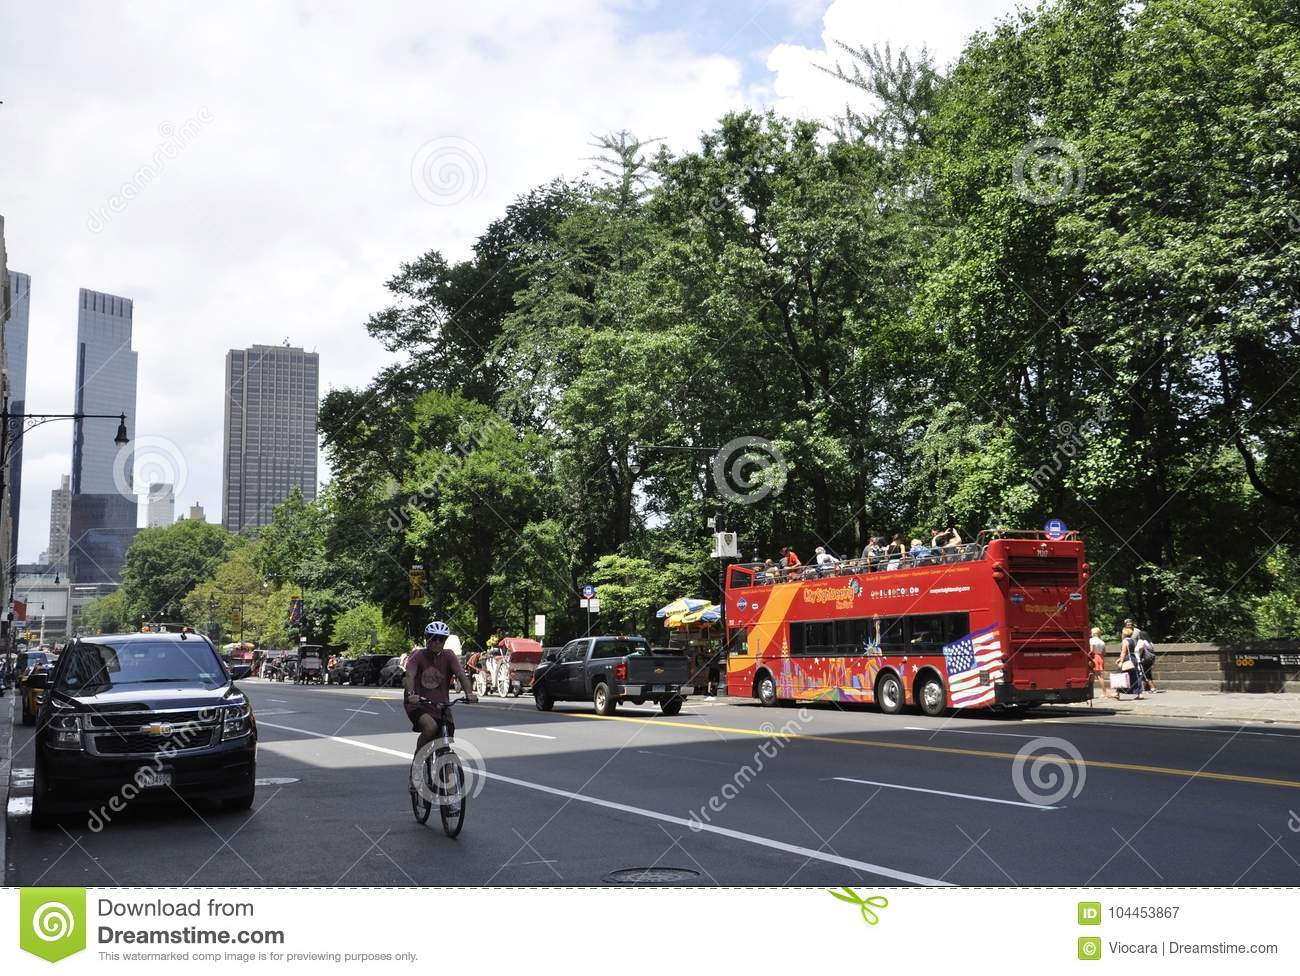 New York City, 1st July: Street view in Midtown Manhattan from New York City in United States